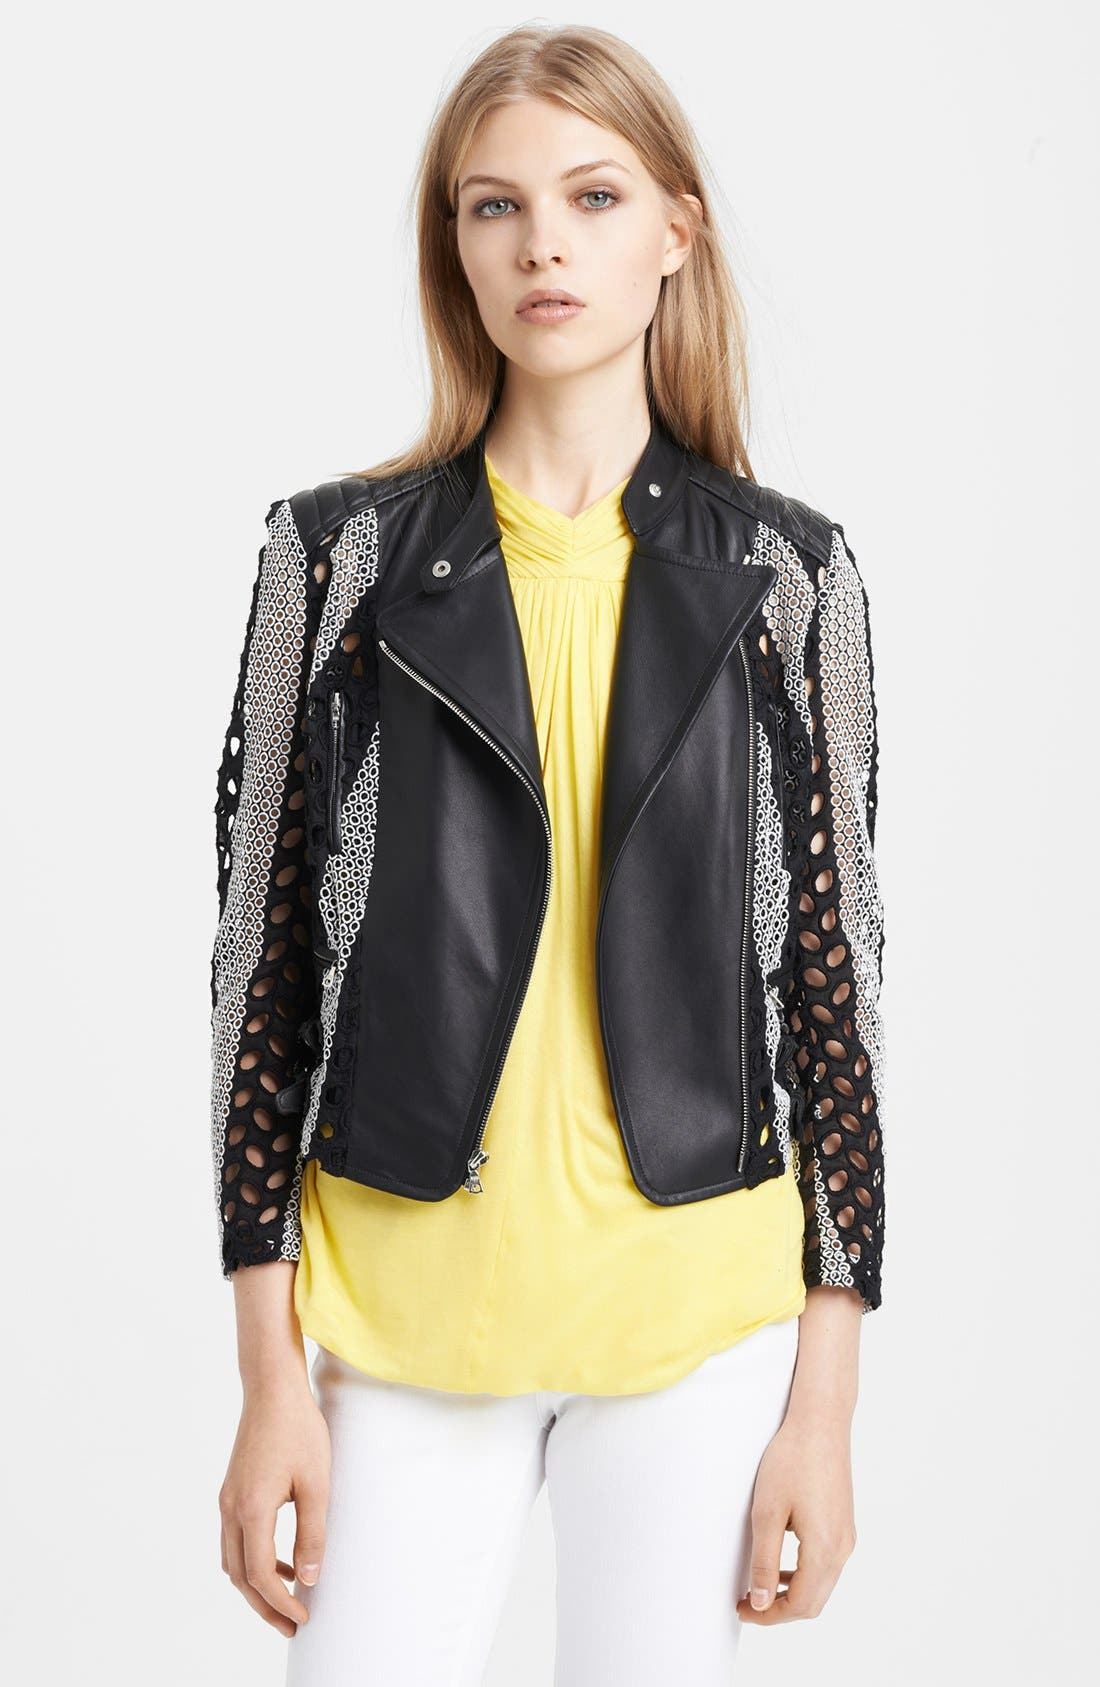 Main Image - Yigal Azrouël Cotton Eyelet & Leather Moto Jacket